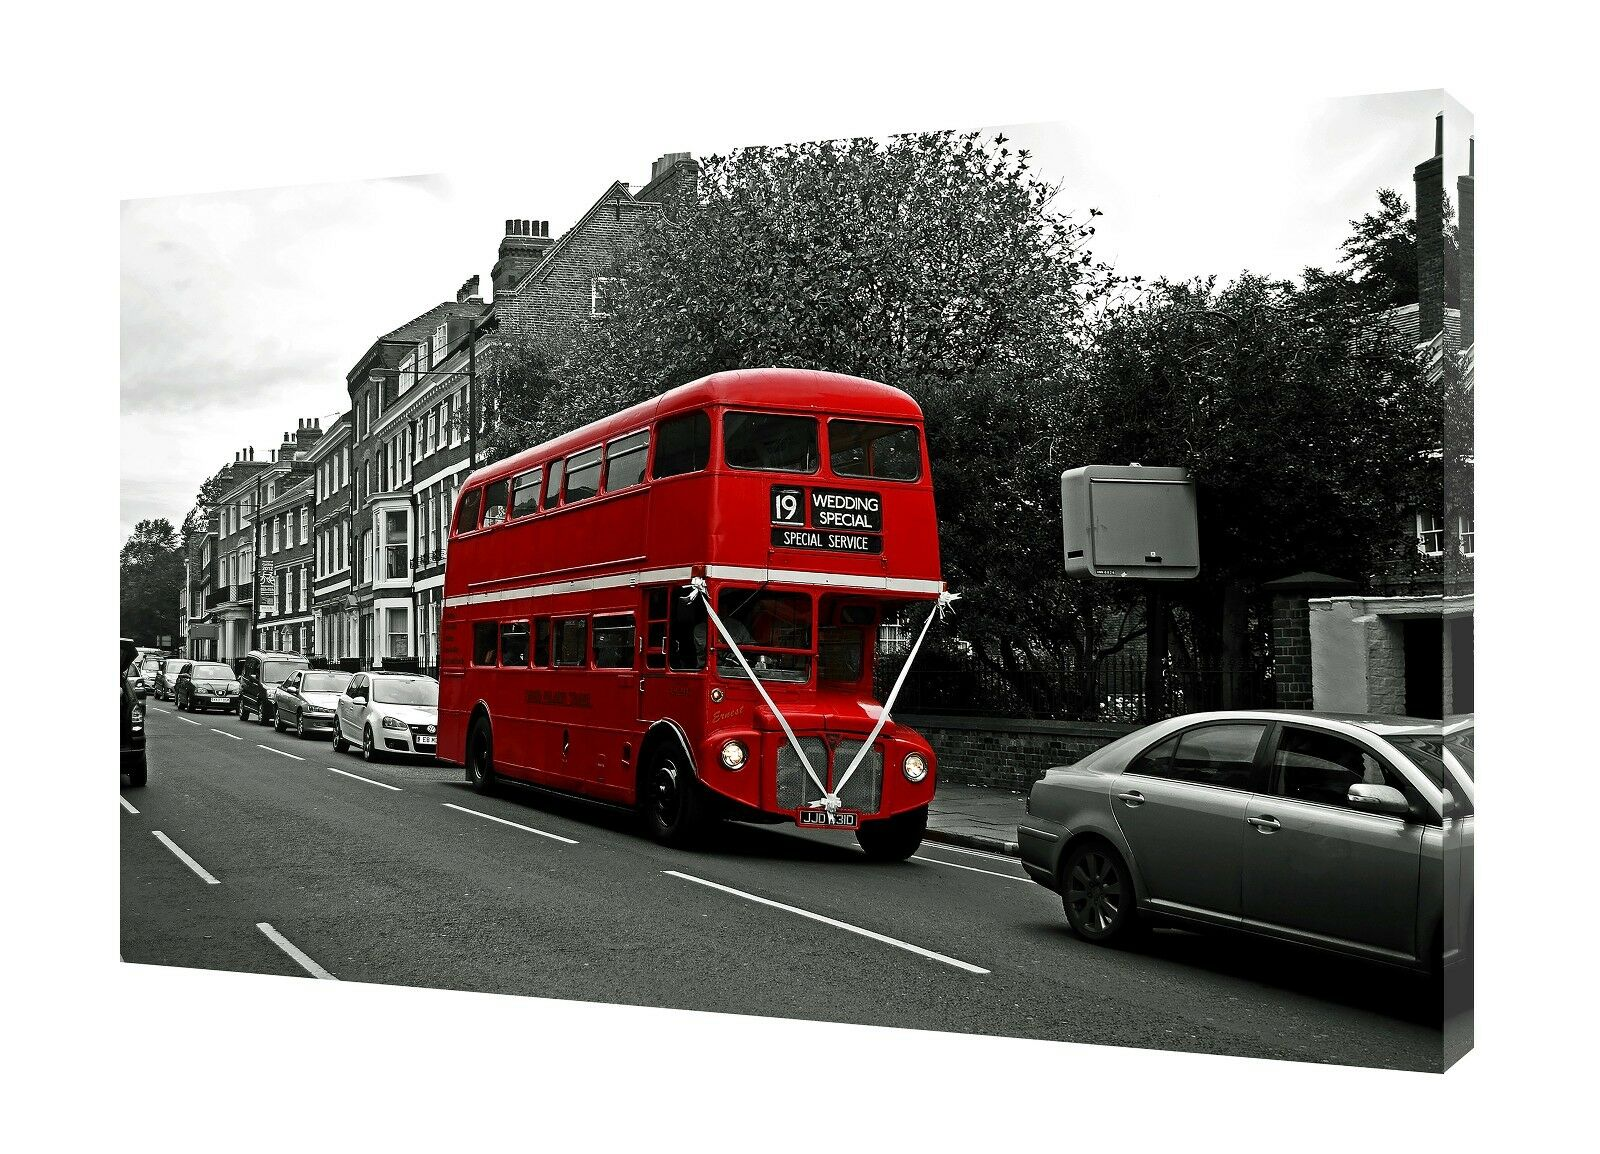 LONDON WEDDING    OLD rot BUS  PHOTO  PRINT ON WOOD  FRAMED CANVAS WALL ART 99a993